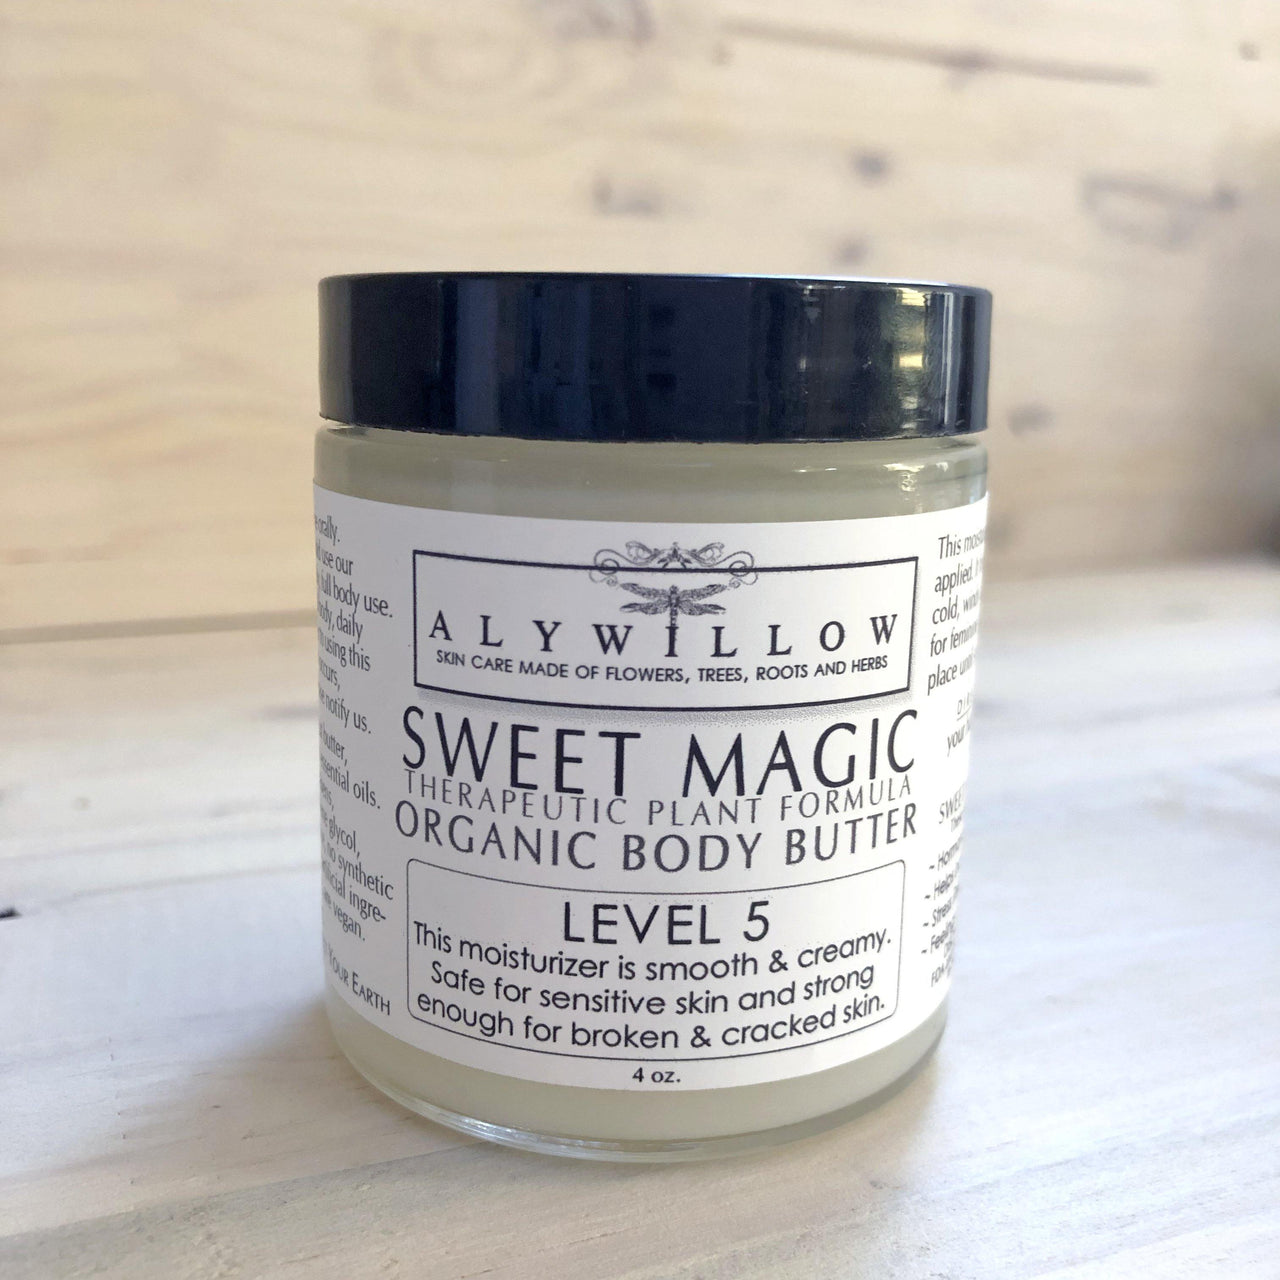 Sweet Magic Level 5 Body Butter Moisturizer